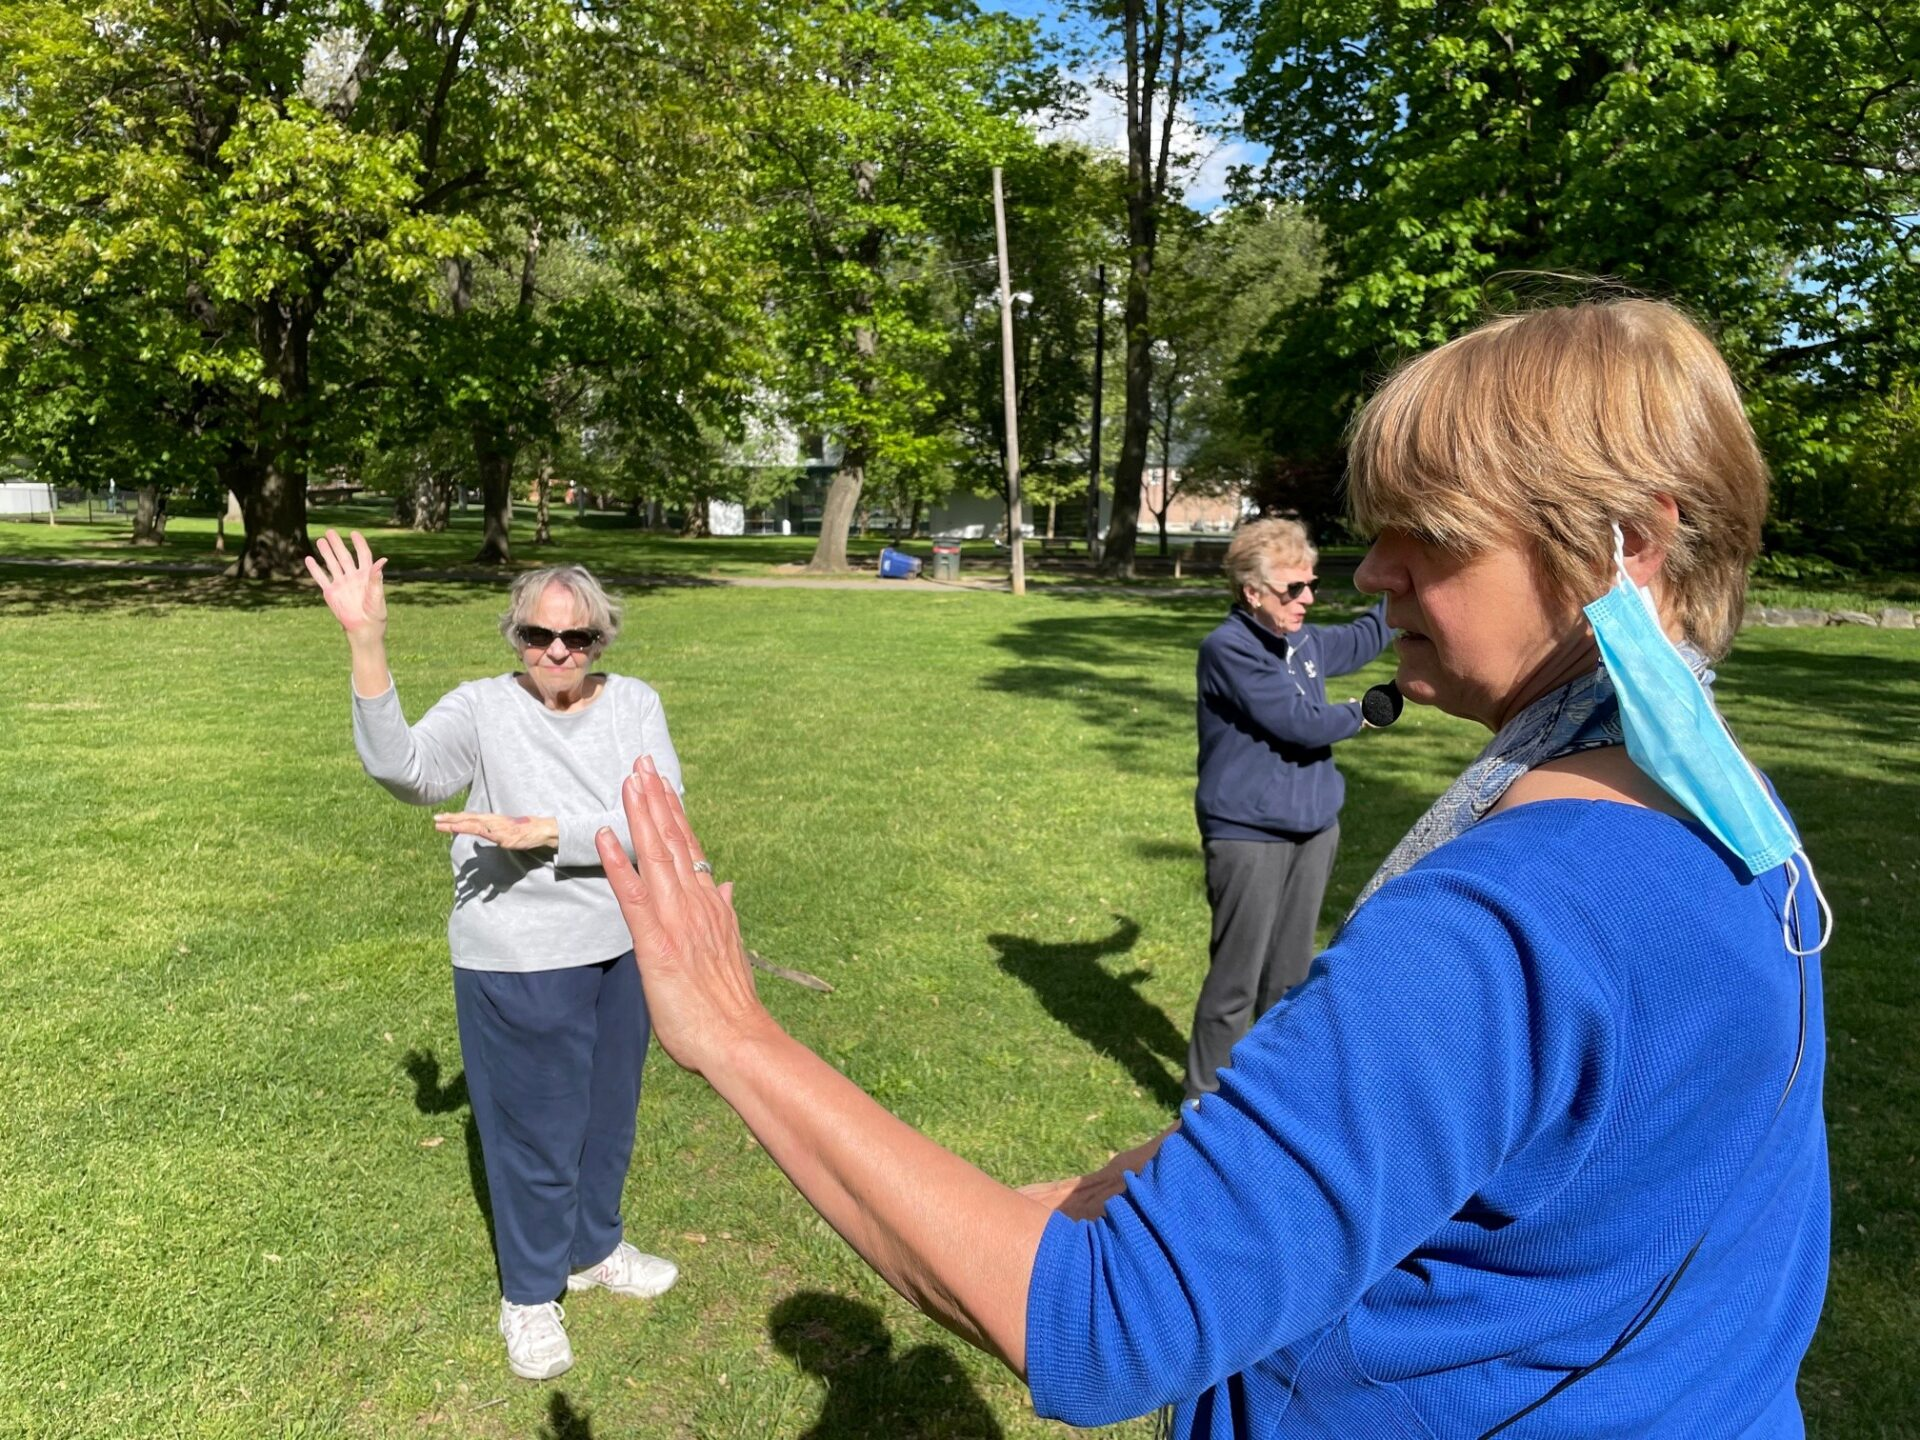 Office of Aging's Tai Chi classes bring seniors together, promote wellness (video)